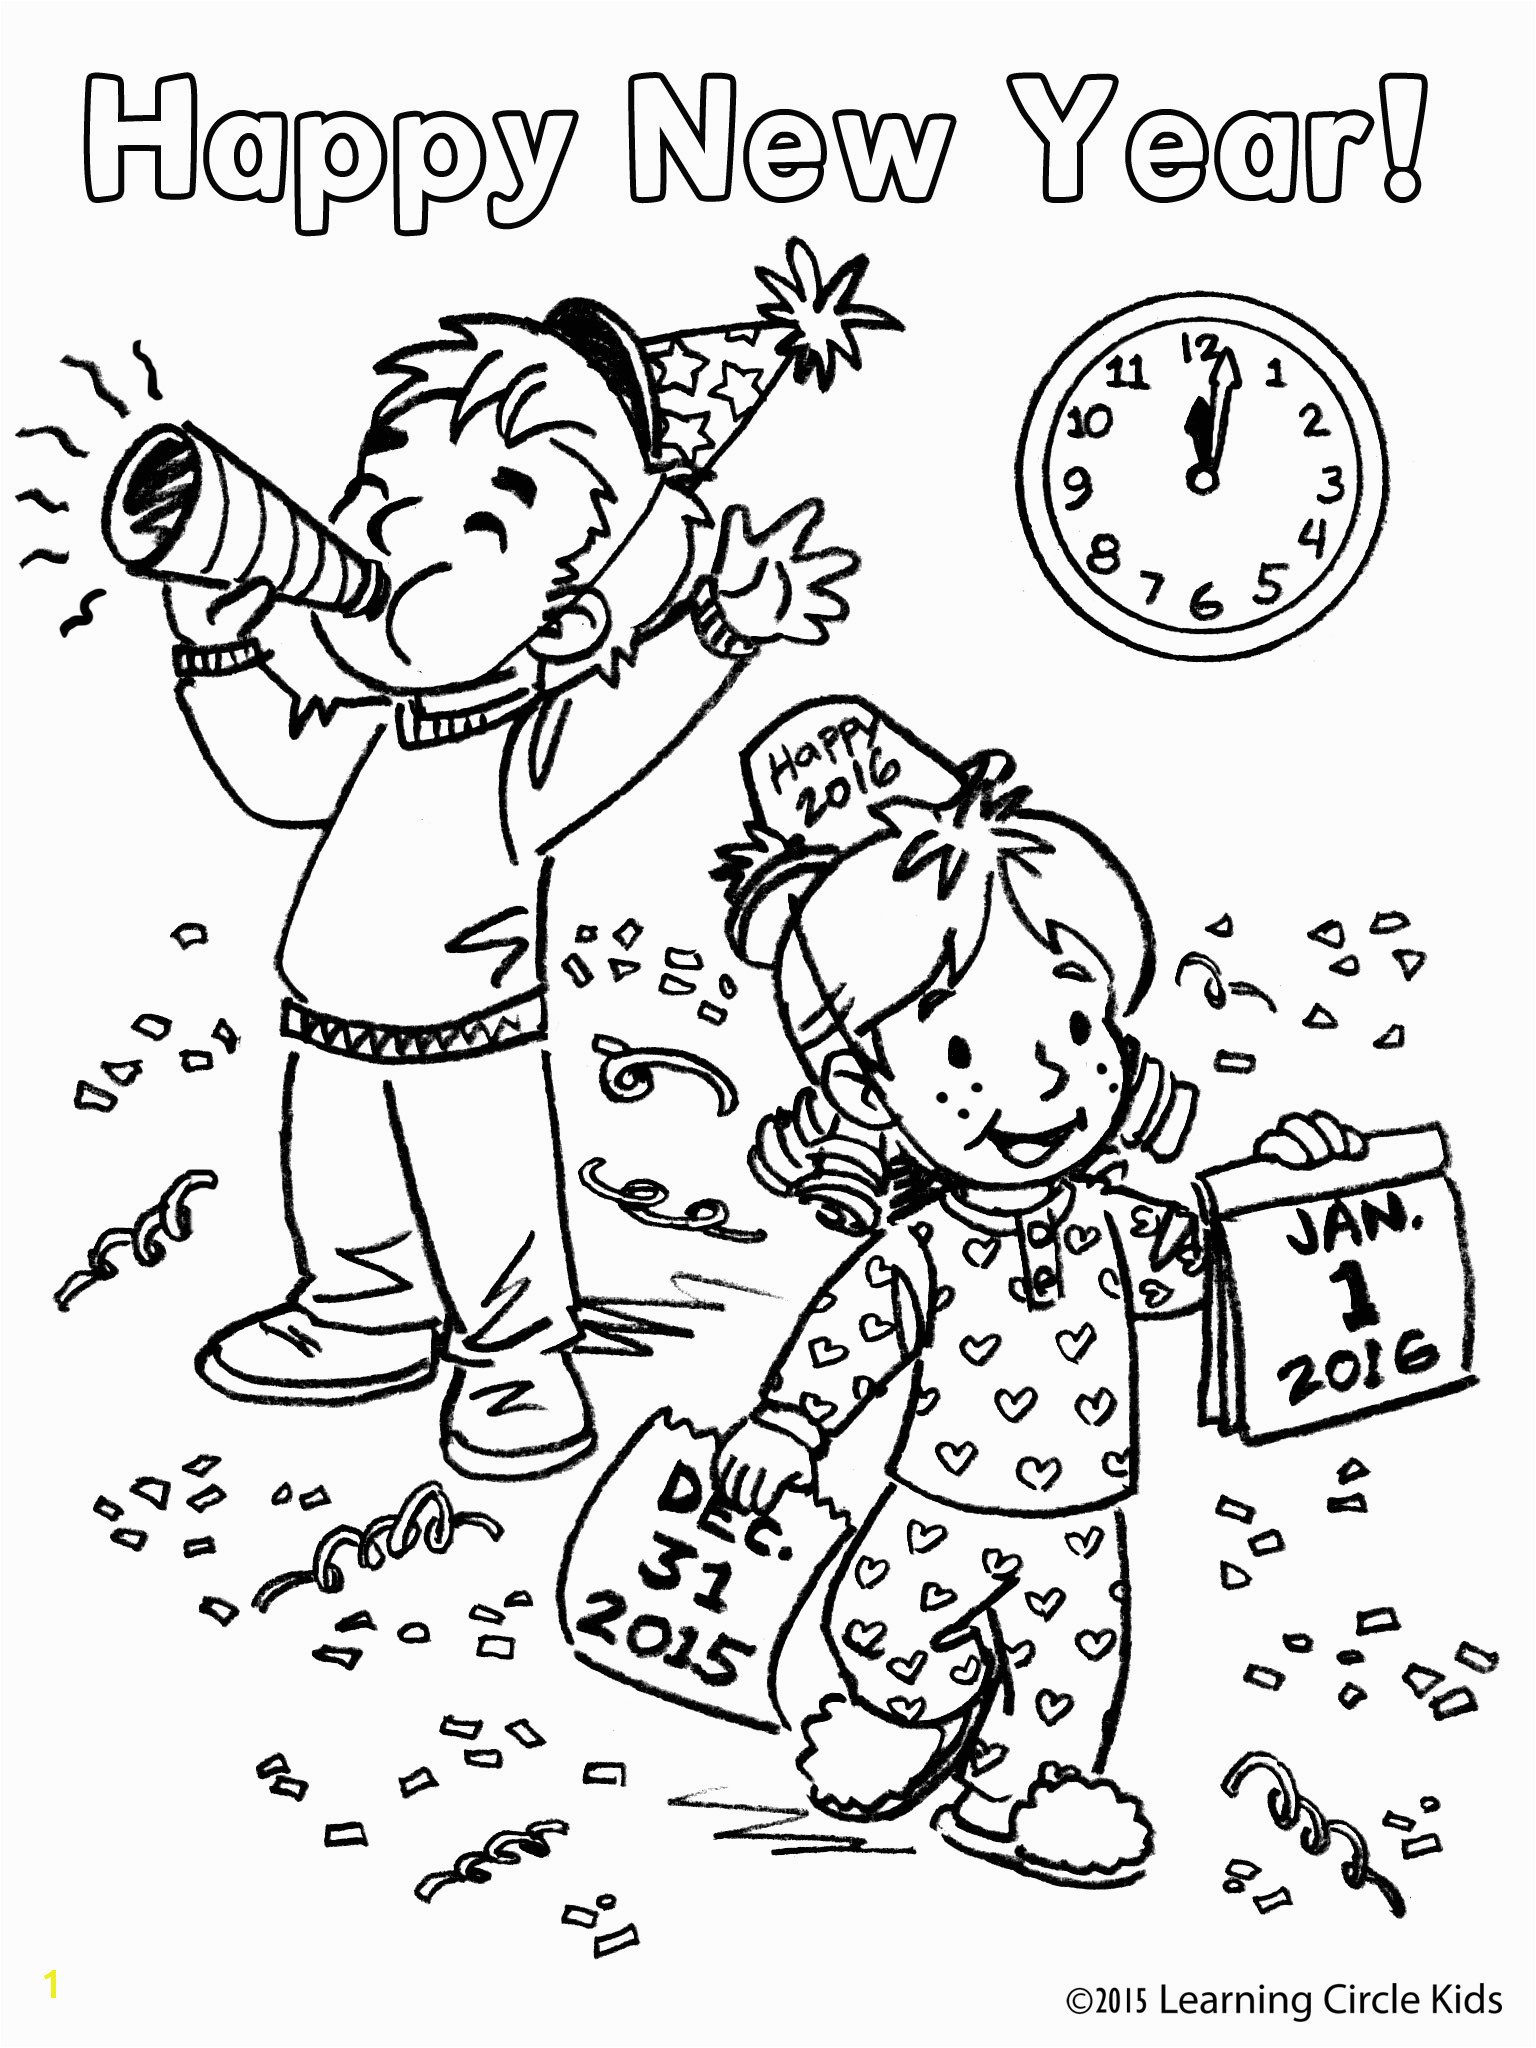 Rainbow Brite Coloring Pages Free Coloring Page for Kids New Year Party Download